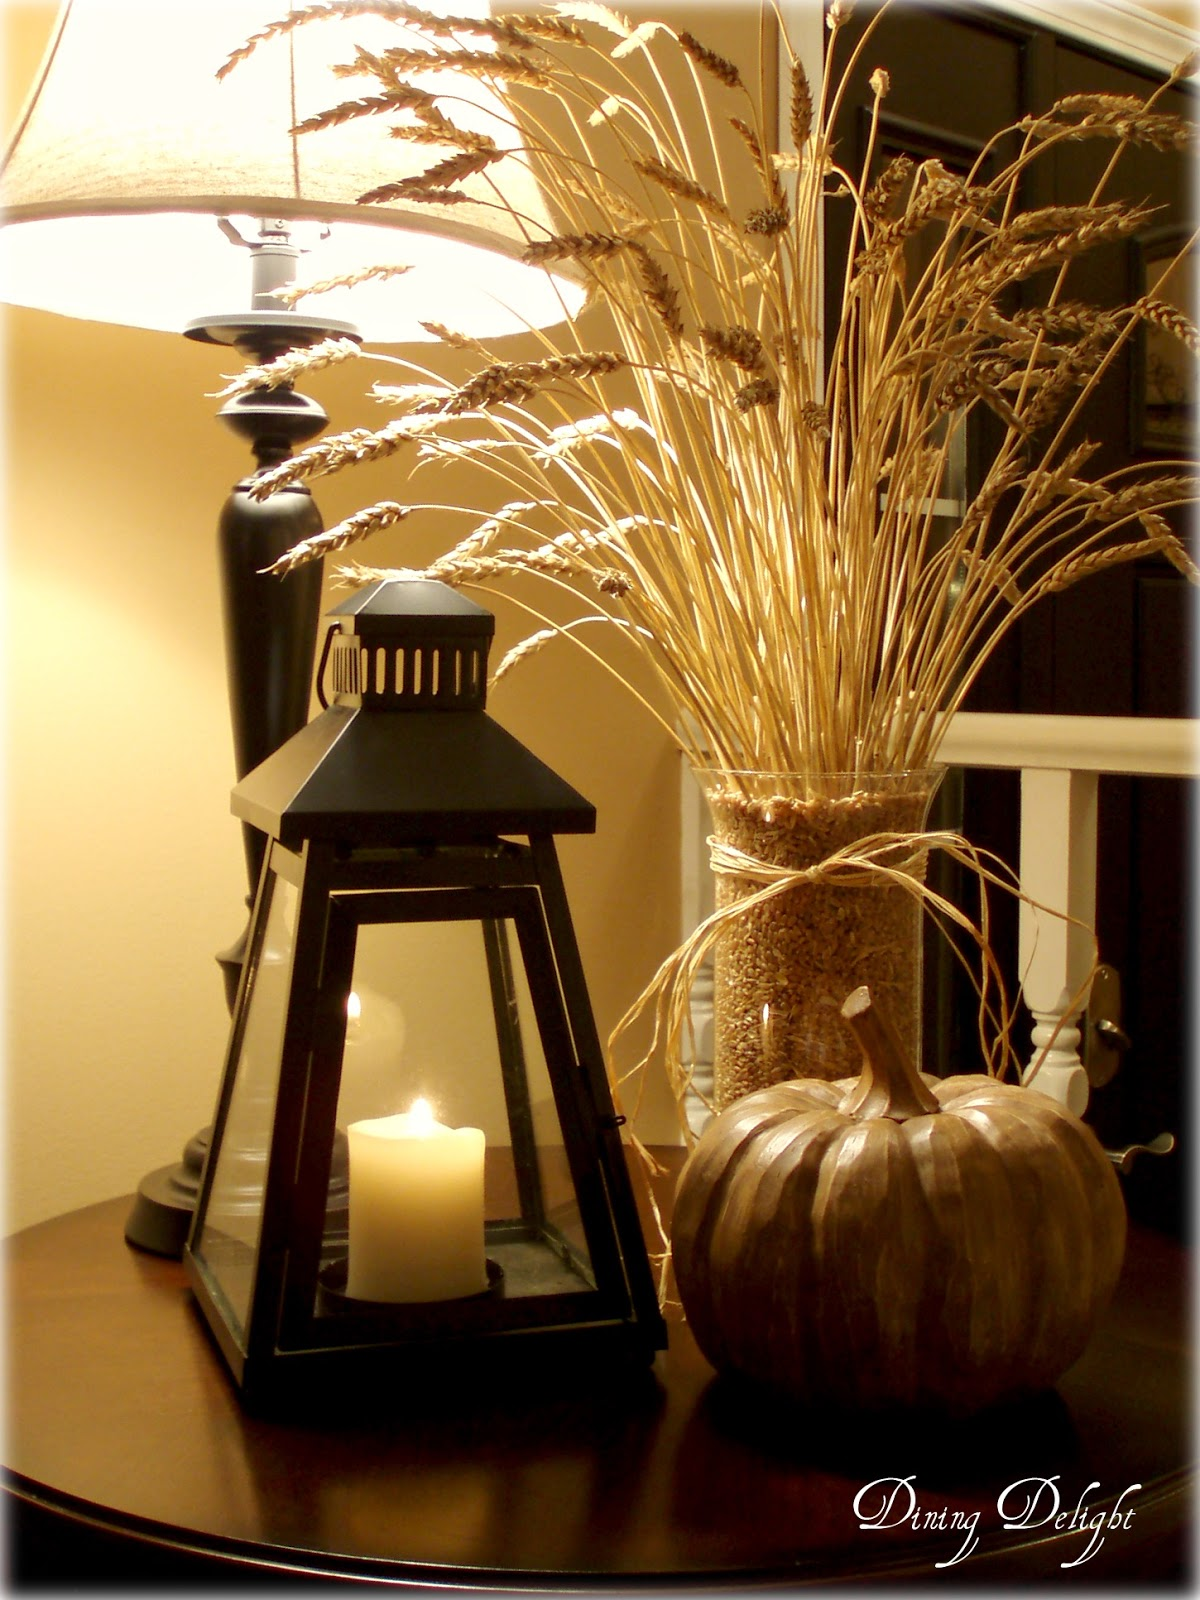 Dining Delight Fall Wheat Centerpiece